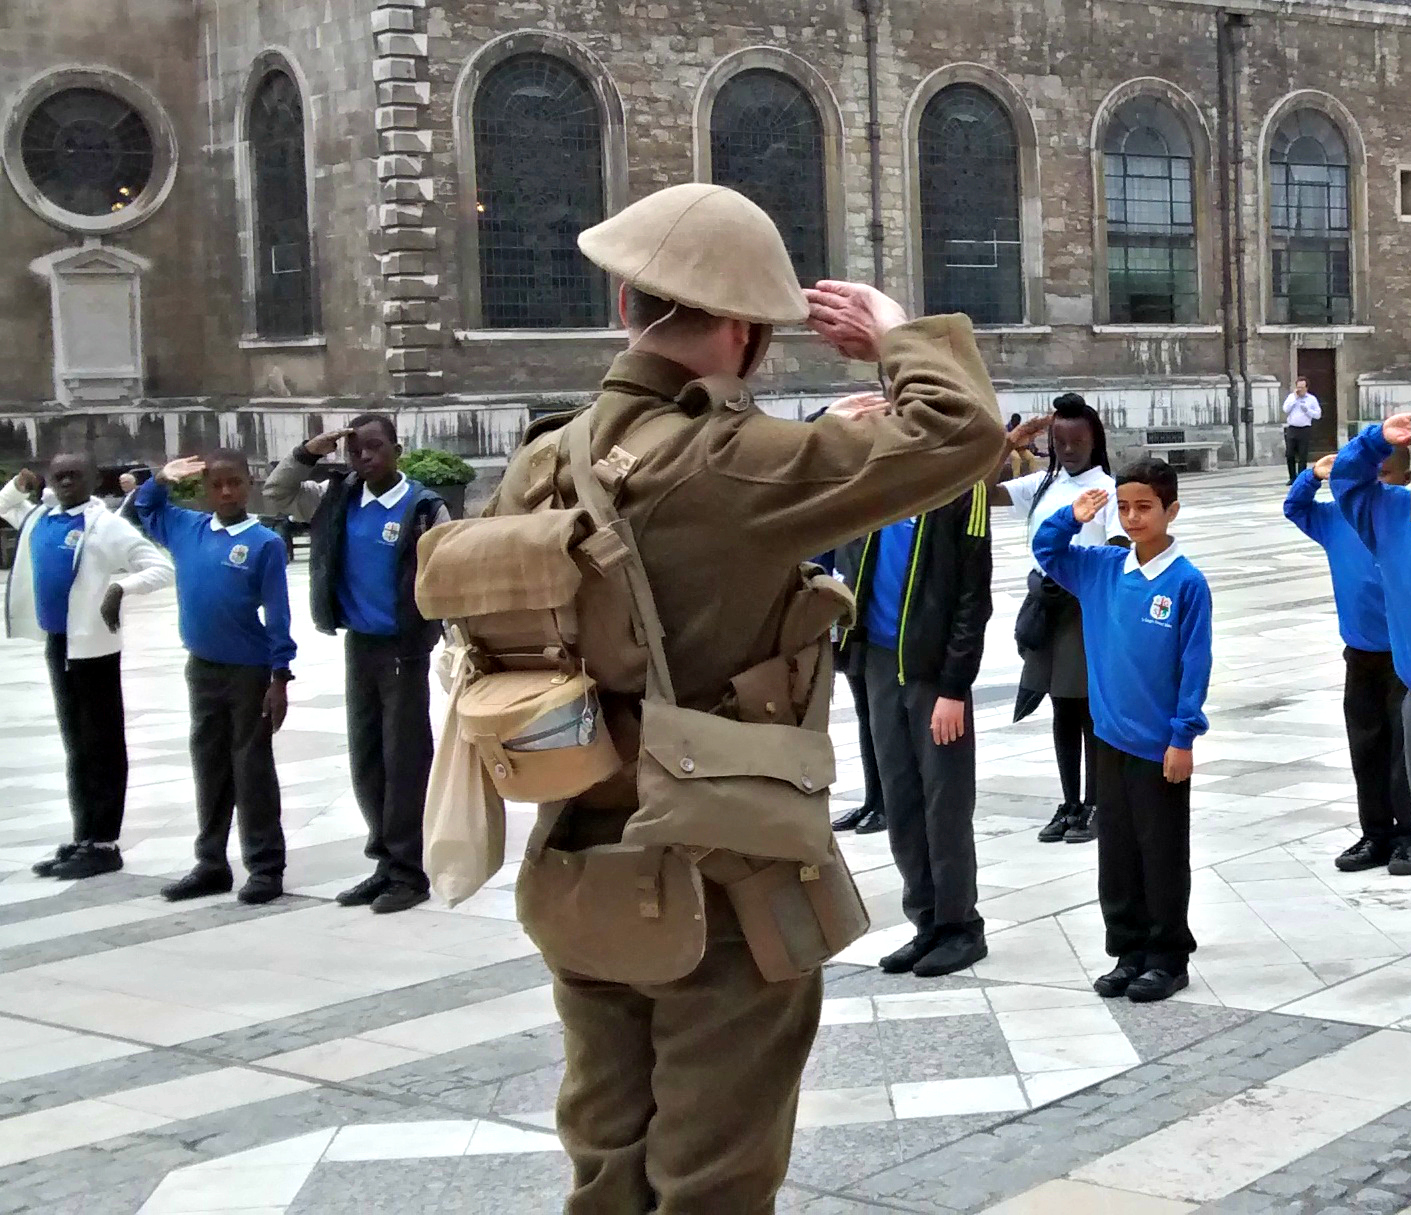 Man in WWI soldier's uniform salutes some children who salute back.